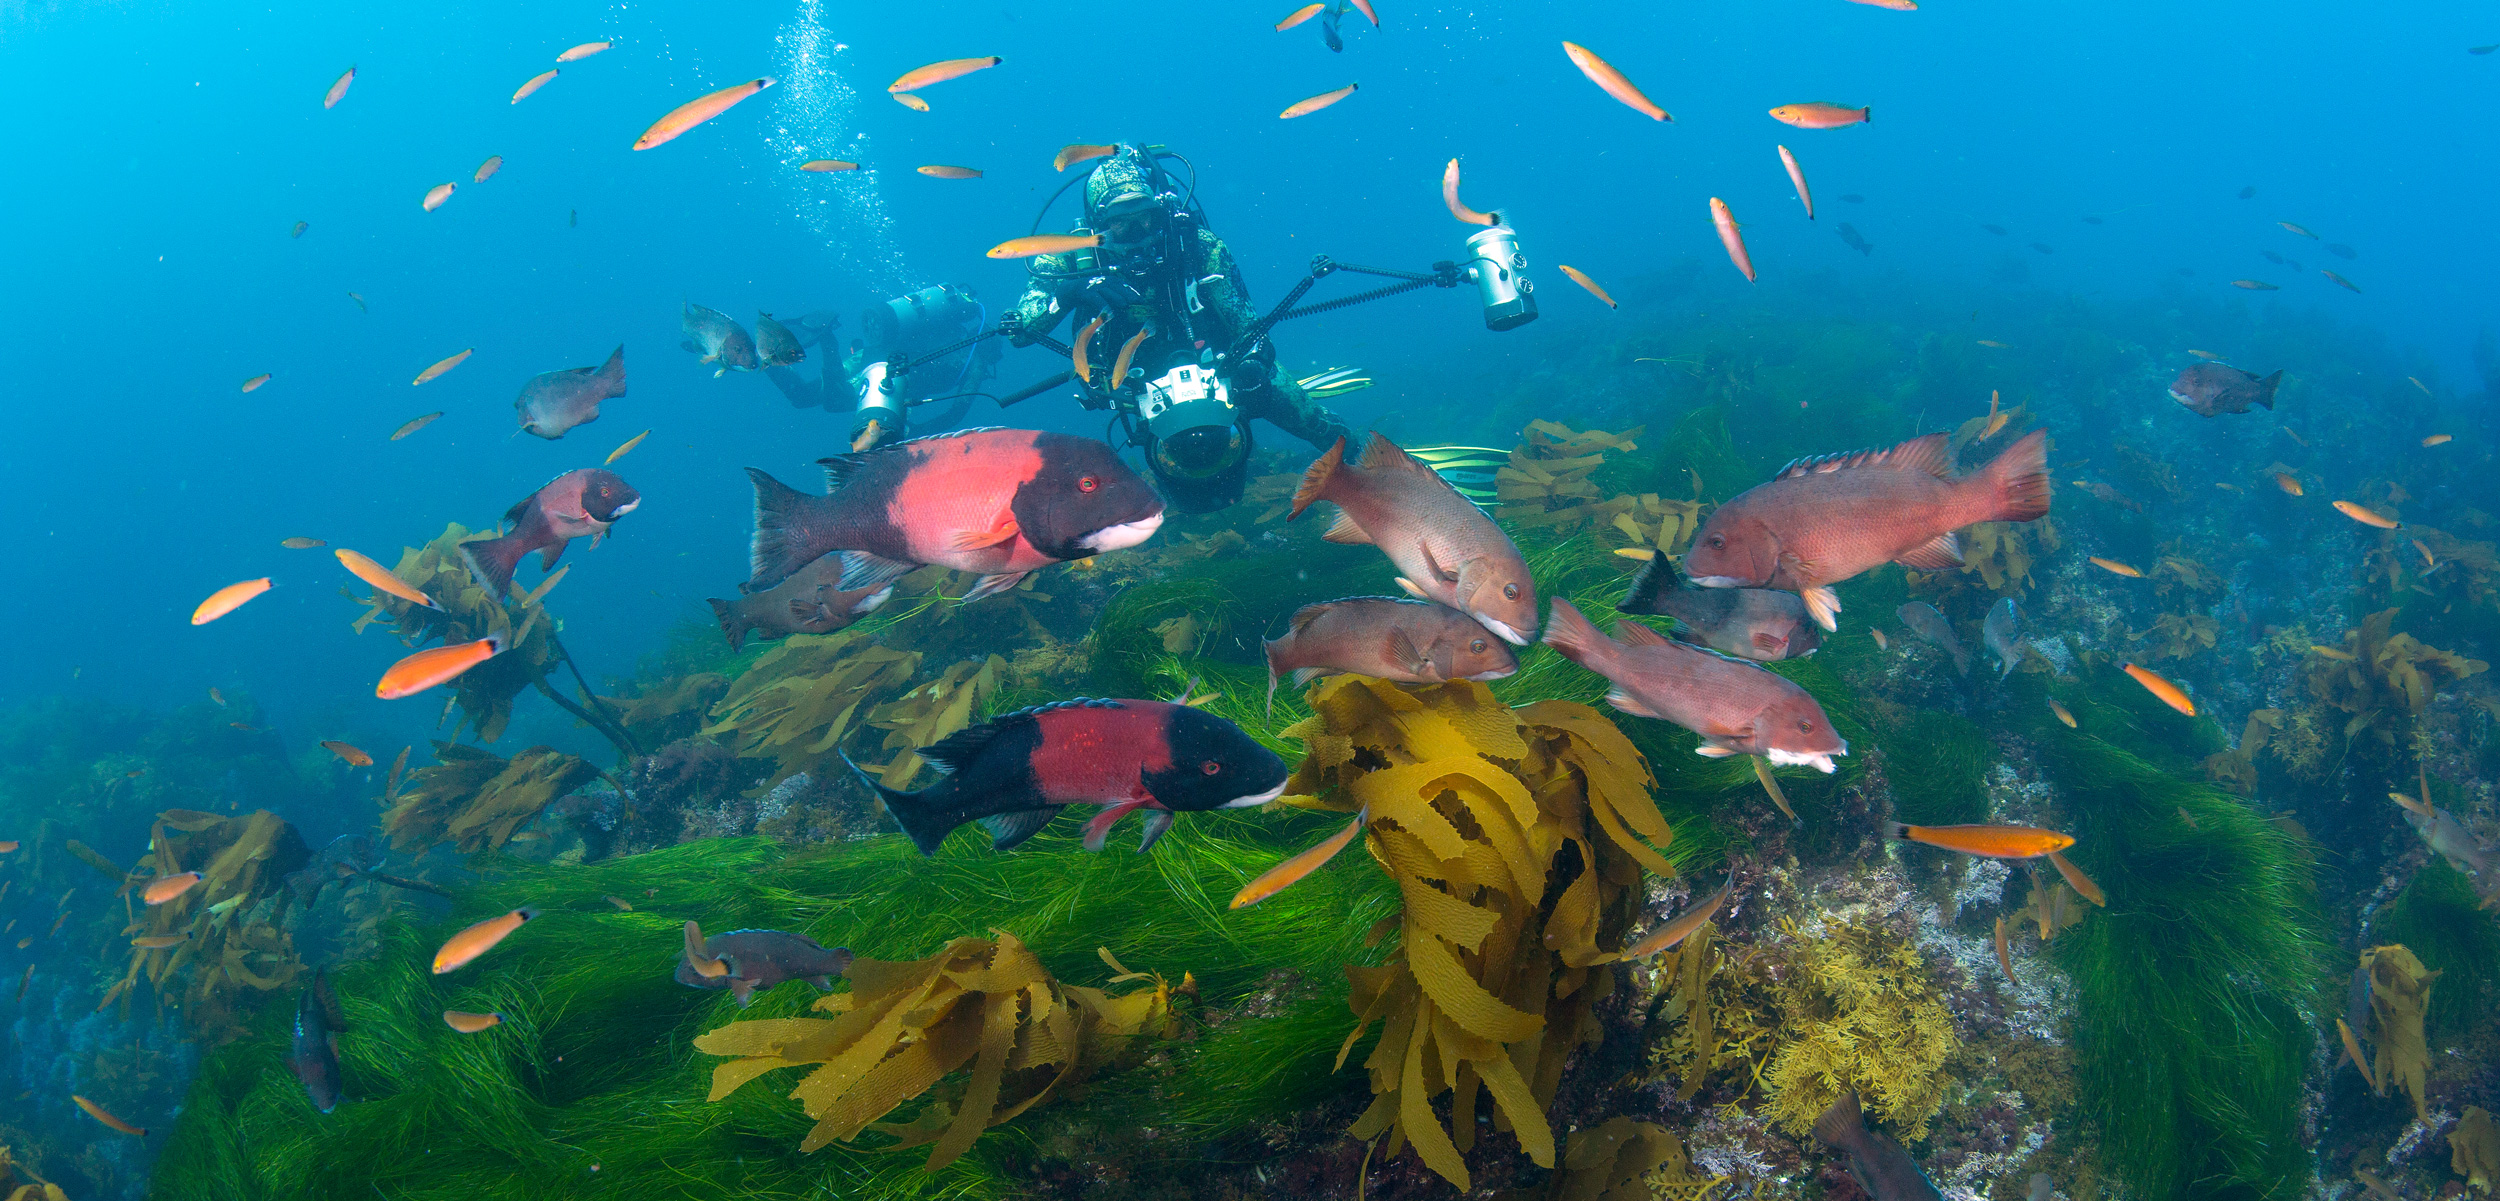 scuba divers and fish at Cortes Bank, California